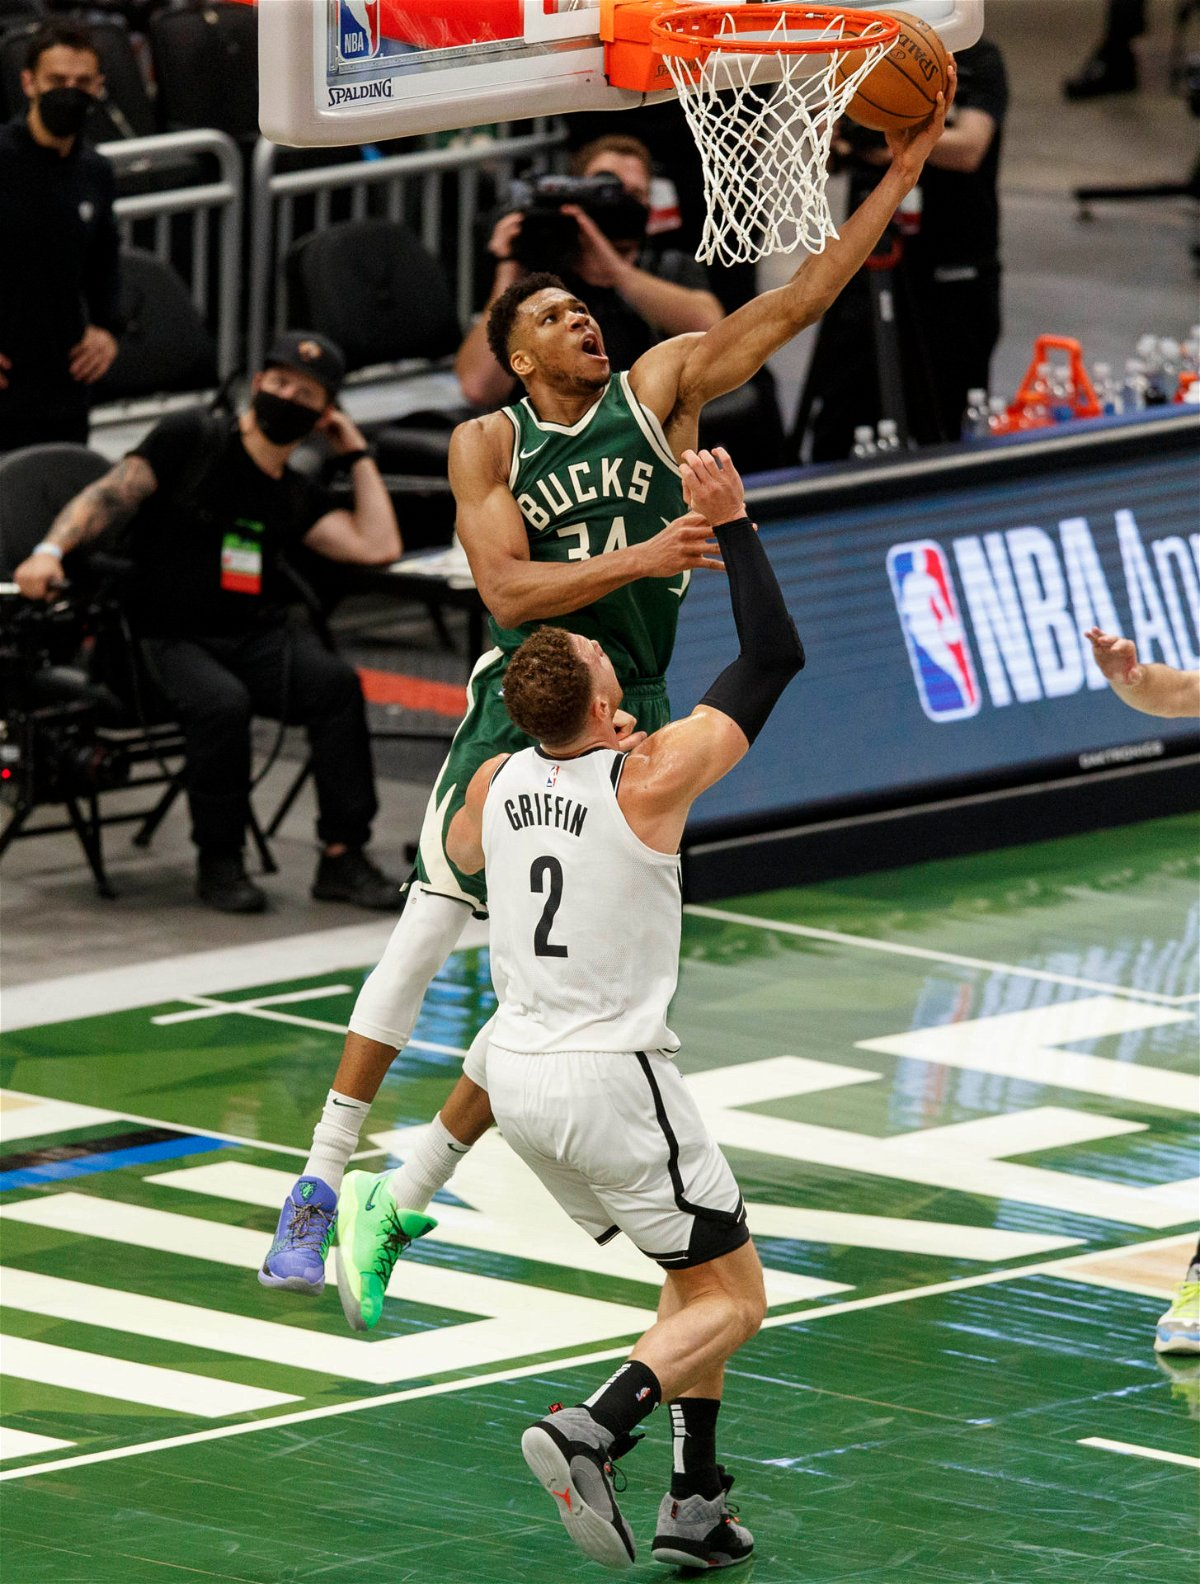 Giannis Antetokounmpo Warns Other Shooters Against Going Back And Forth With Brooklyn Nets Kevin Durant Future Tech Trends